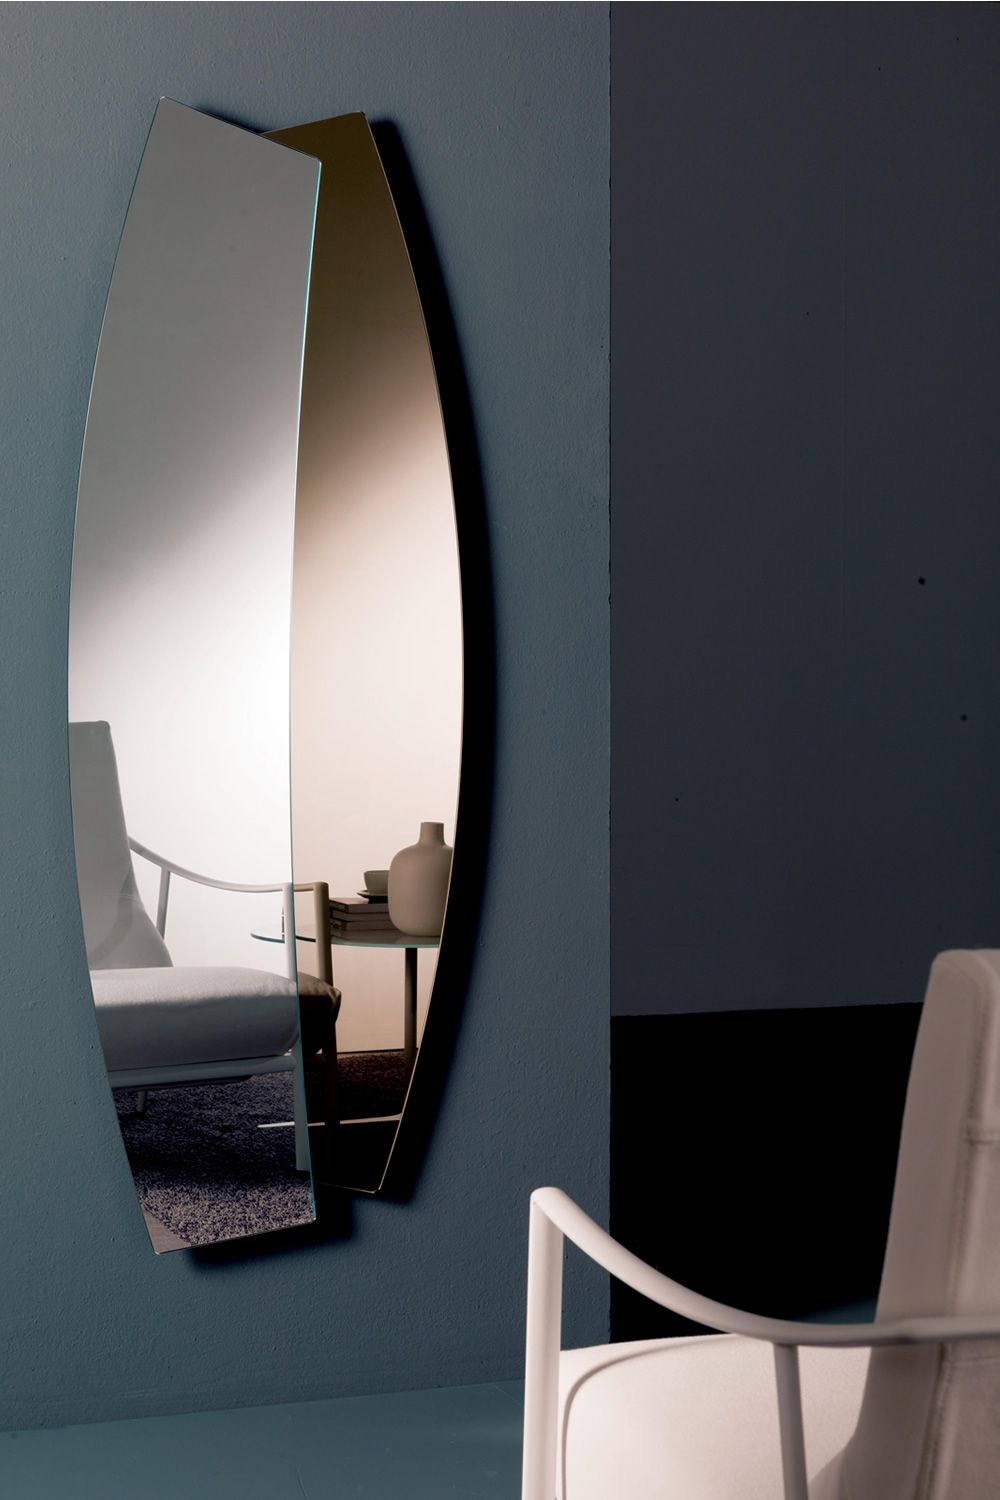 Two-color mirror, vertical position